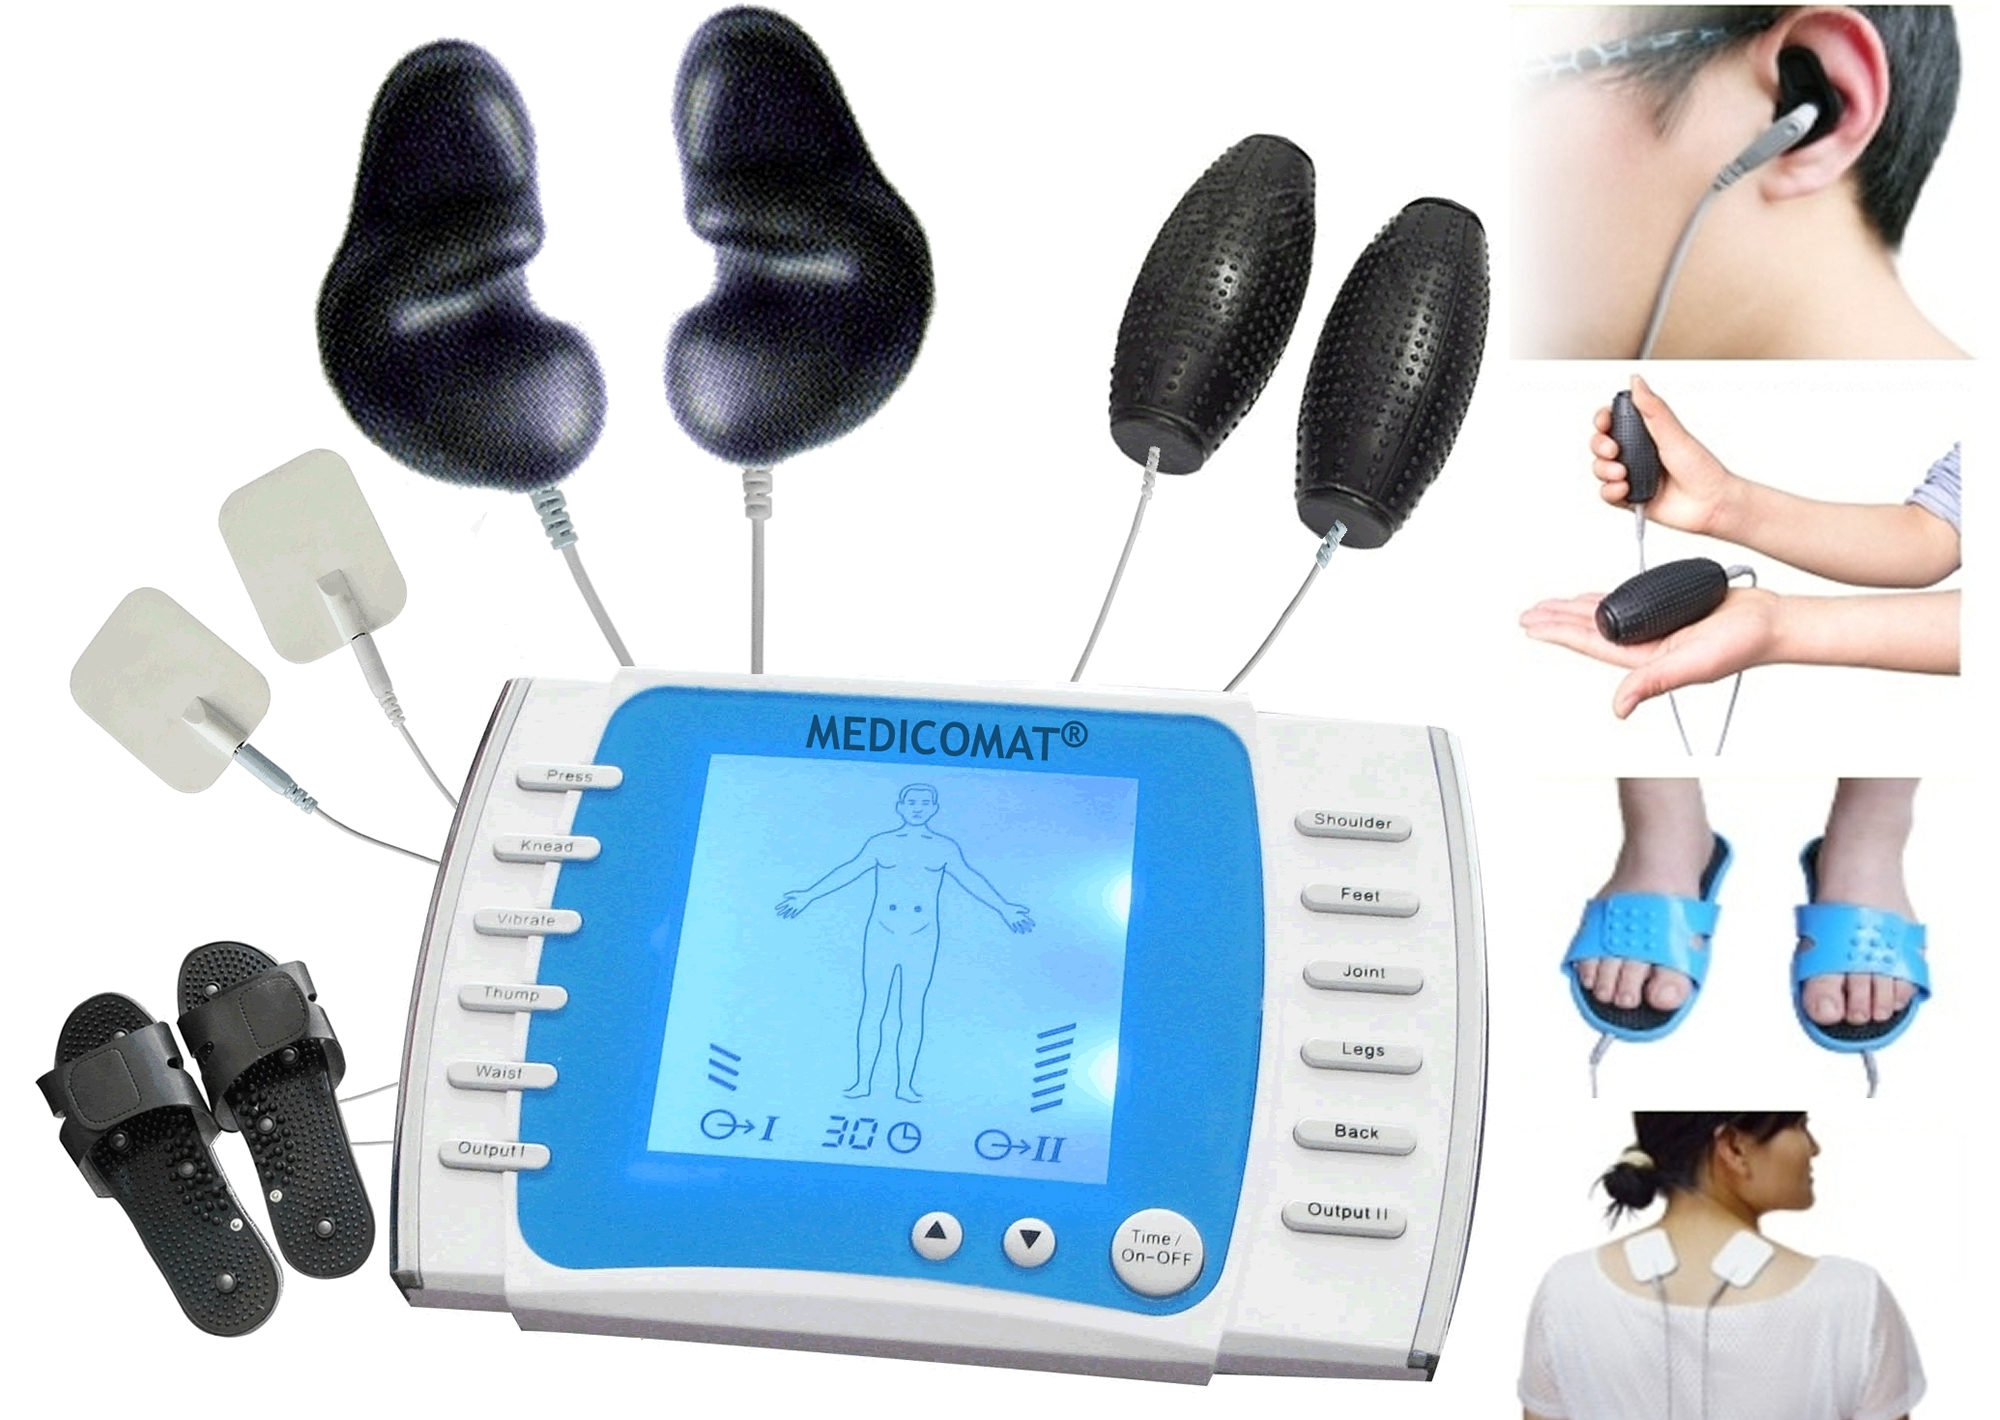 Portable Automatic Therapy Device Medicomat-21